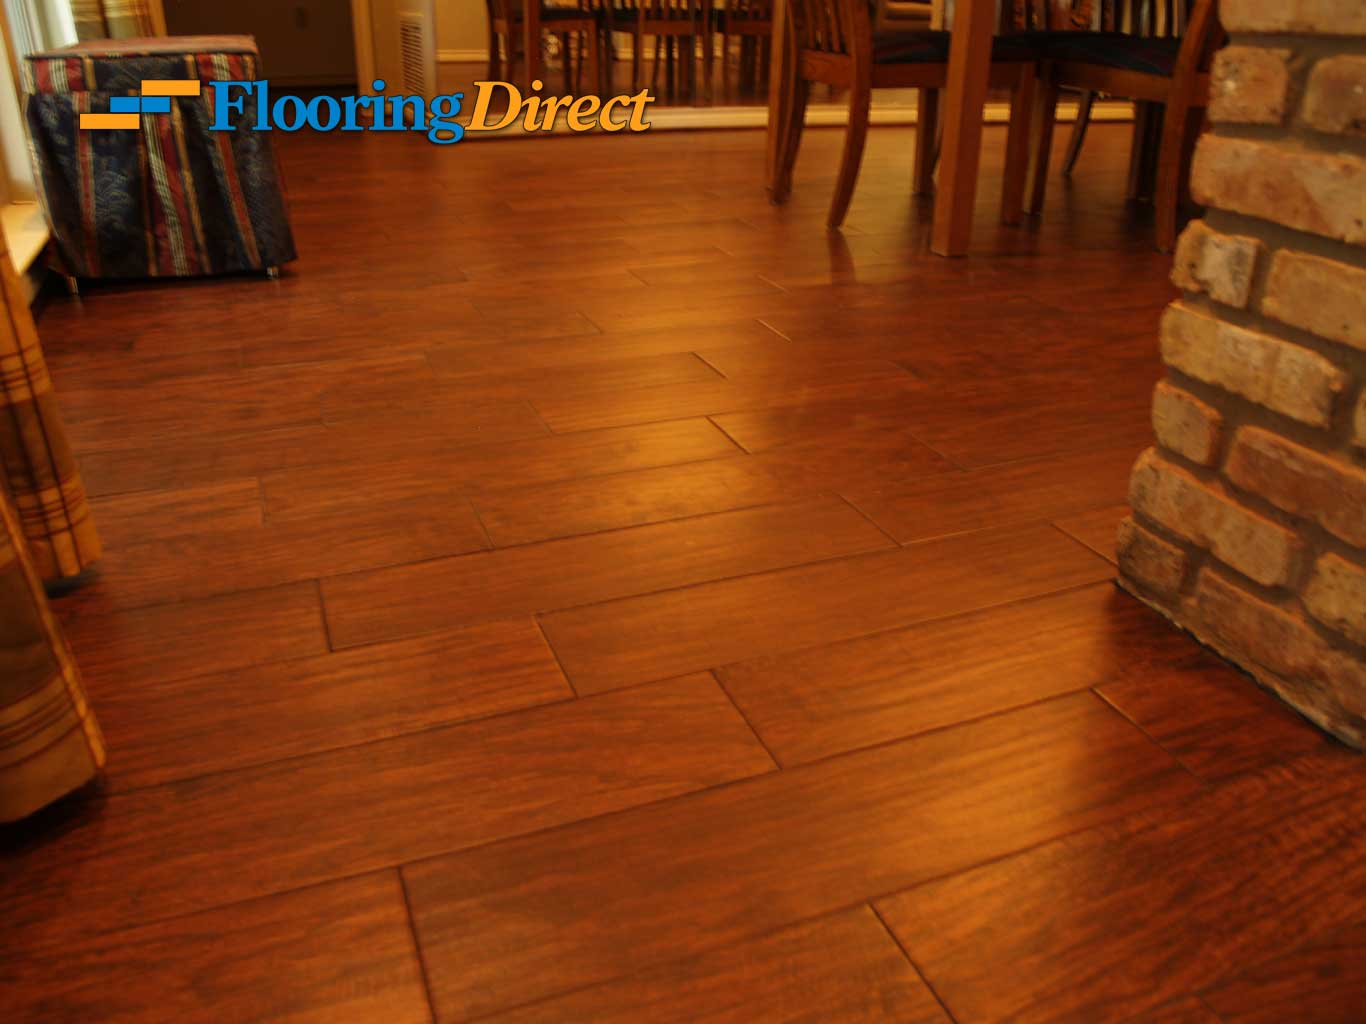 Wood-look Tile Flooring by Flooring Direct serving all of DFW including Irving